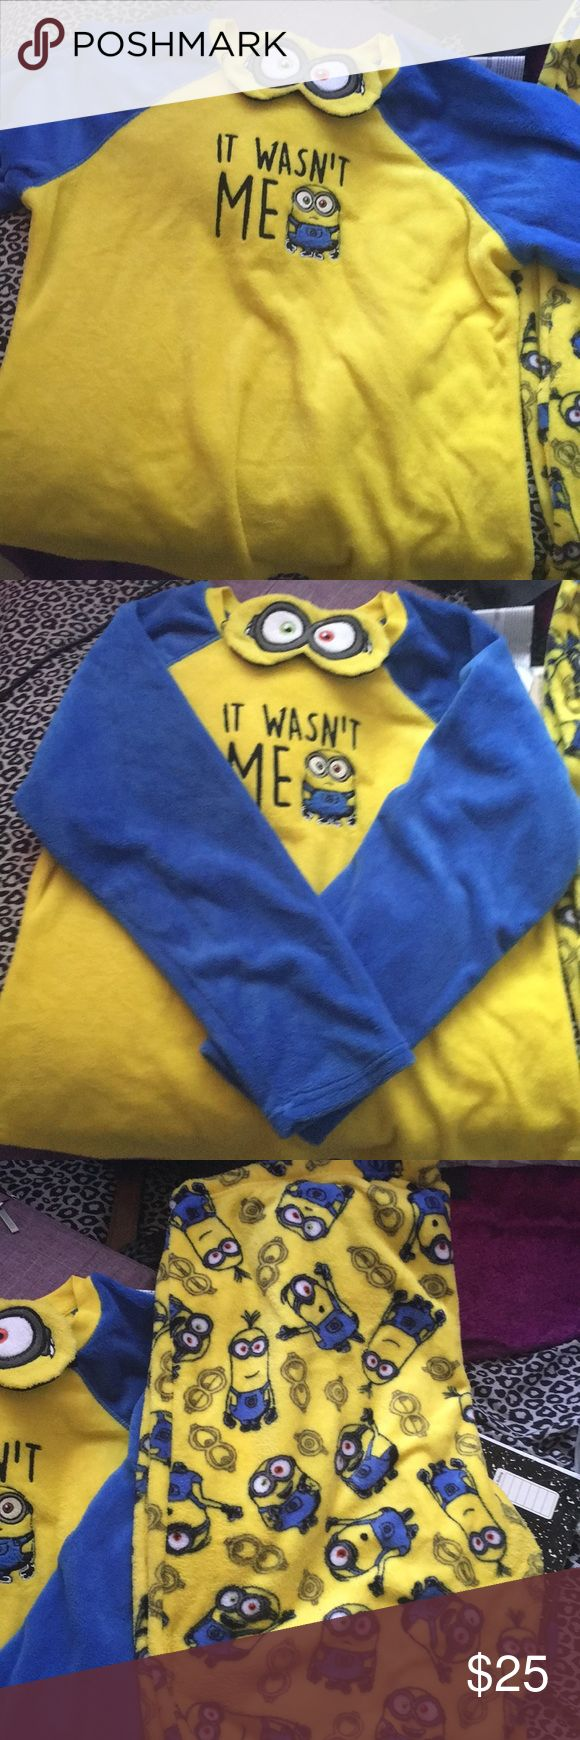 Minion women's sleepwear Size 2x (18W-20W) MINIONS! Long sleeve shirt. Long stretchy pants.  IT ALSO INCLUDES A MINION MASK! WILL ALSO INCLUDE REGULAR MINION SOCKS. It is super soft and comfy. Bought them for me for Christmas in 2015  because Its really cute. But I live in Florida! Who's going to wear that in this heat!   Ps.   shipping any day. SPRING BREAK WEEK ONLY (March 5-12) Intimates & Sleepwear Pajamas